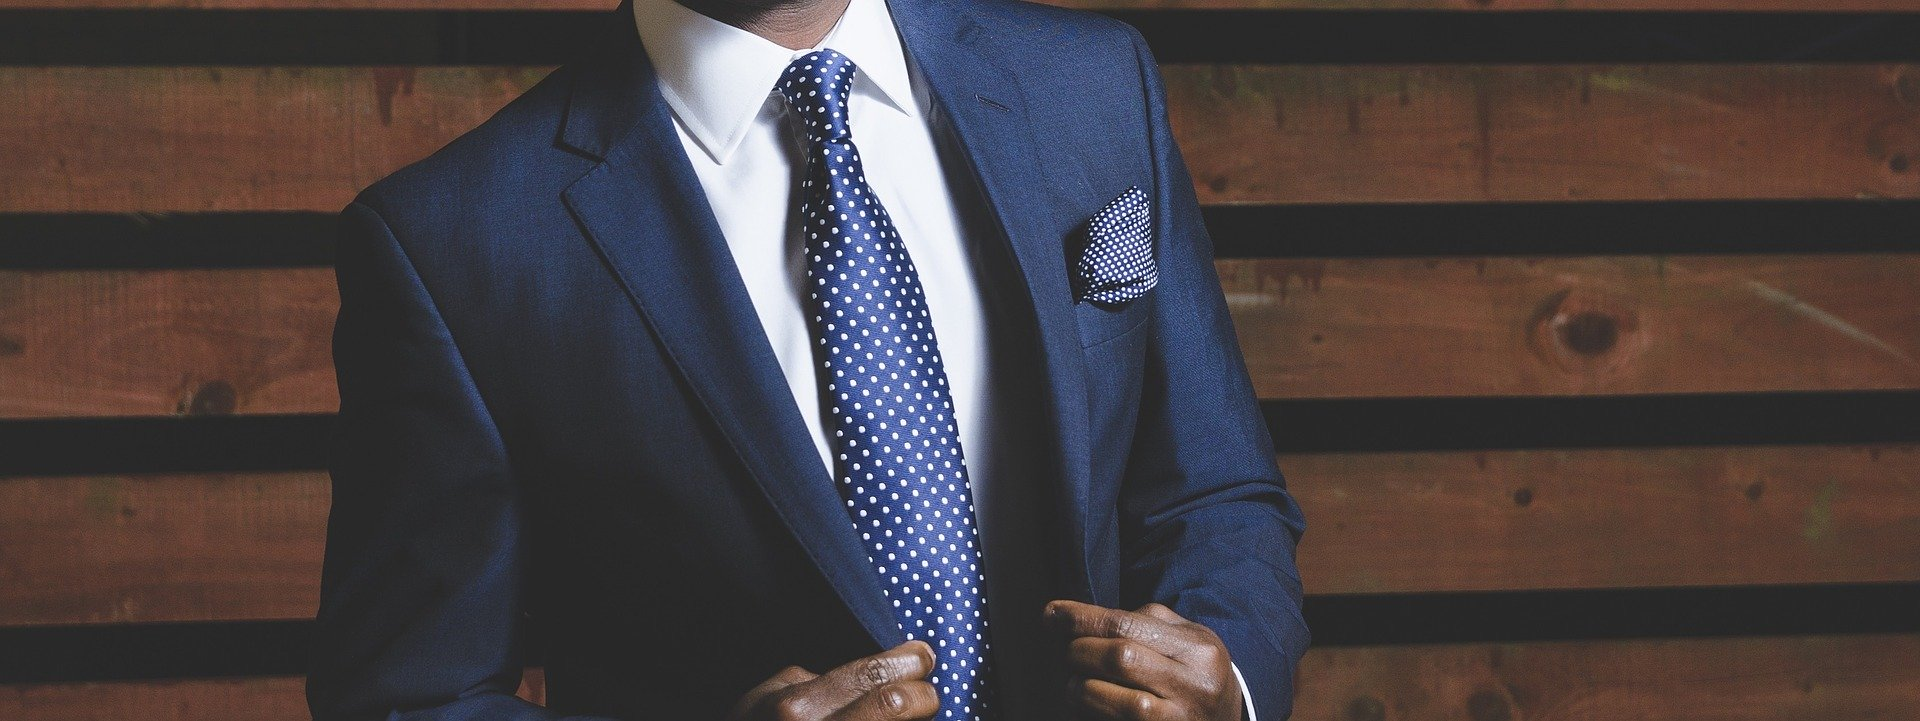 How to Dress for Success Before You Are Successful